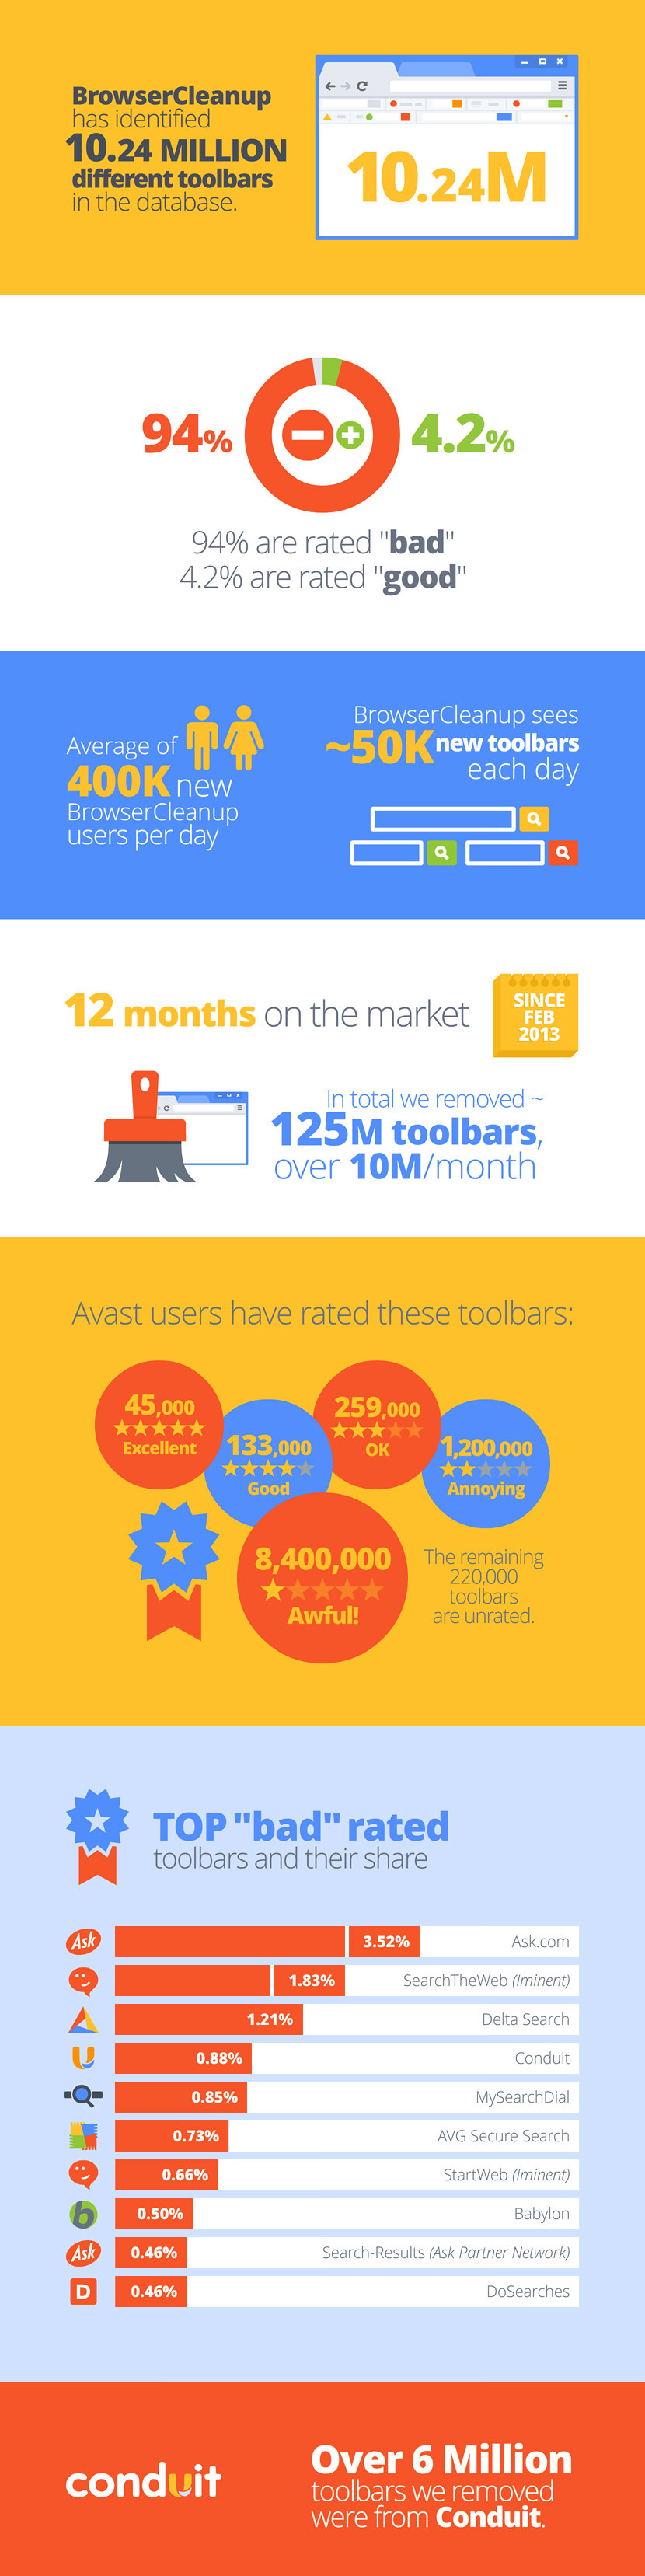 how to delete avast browser